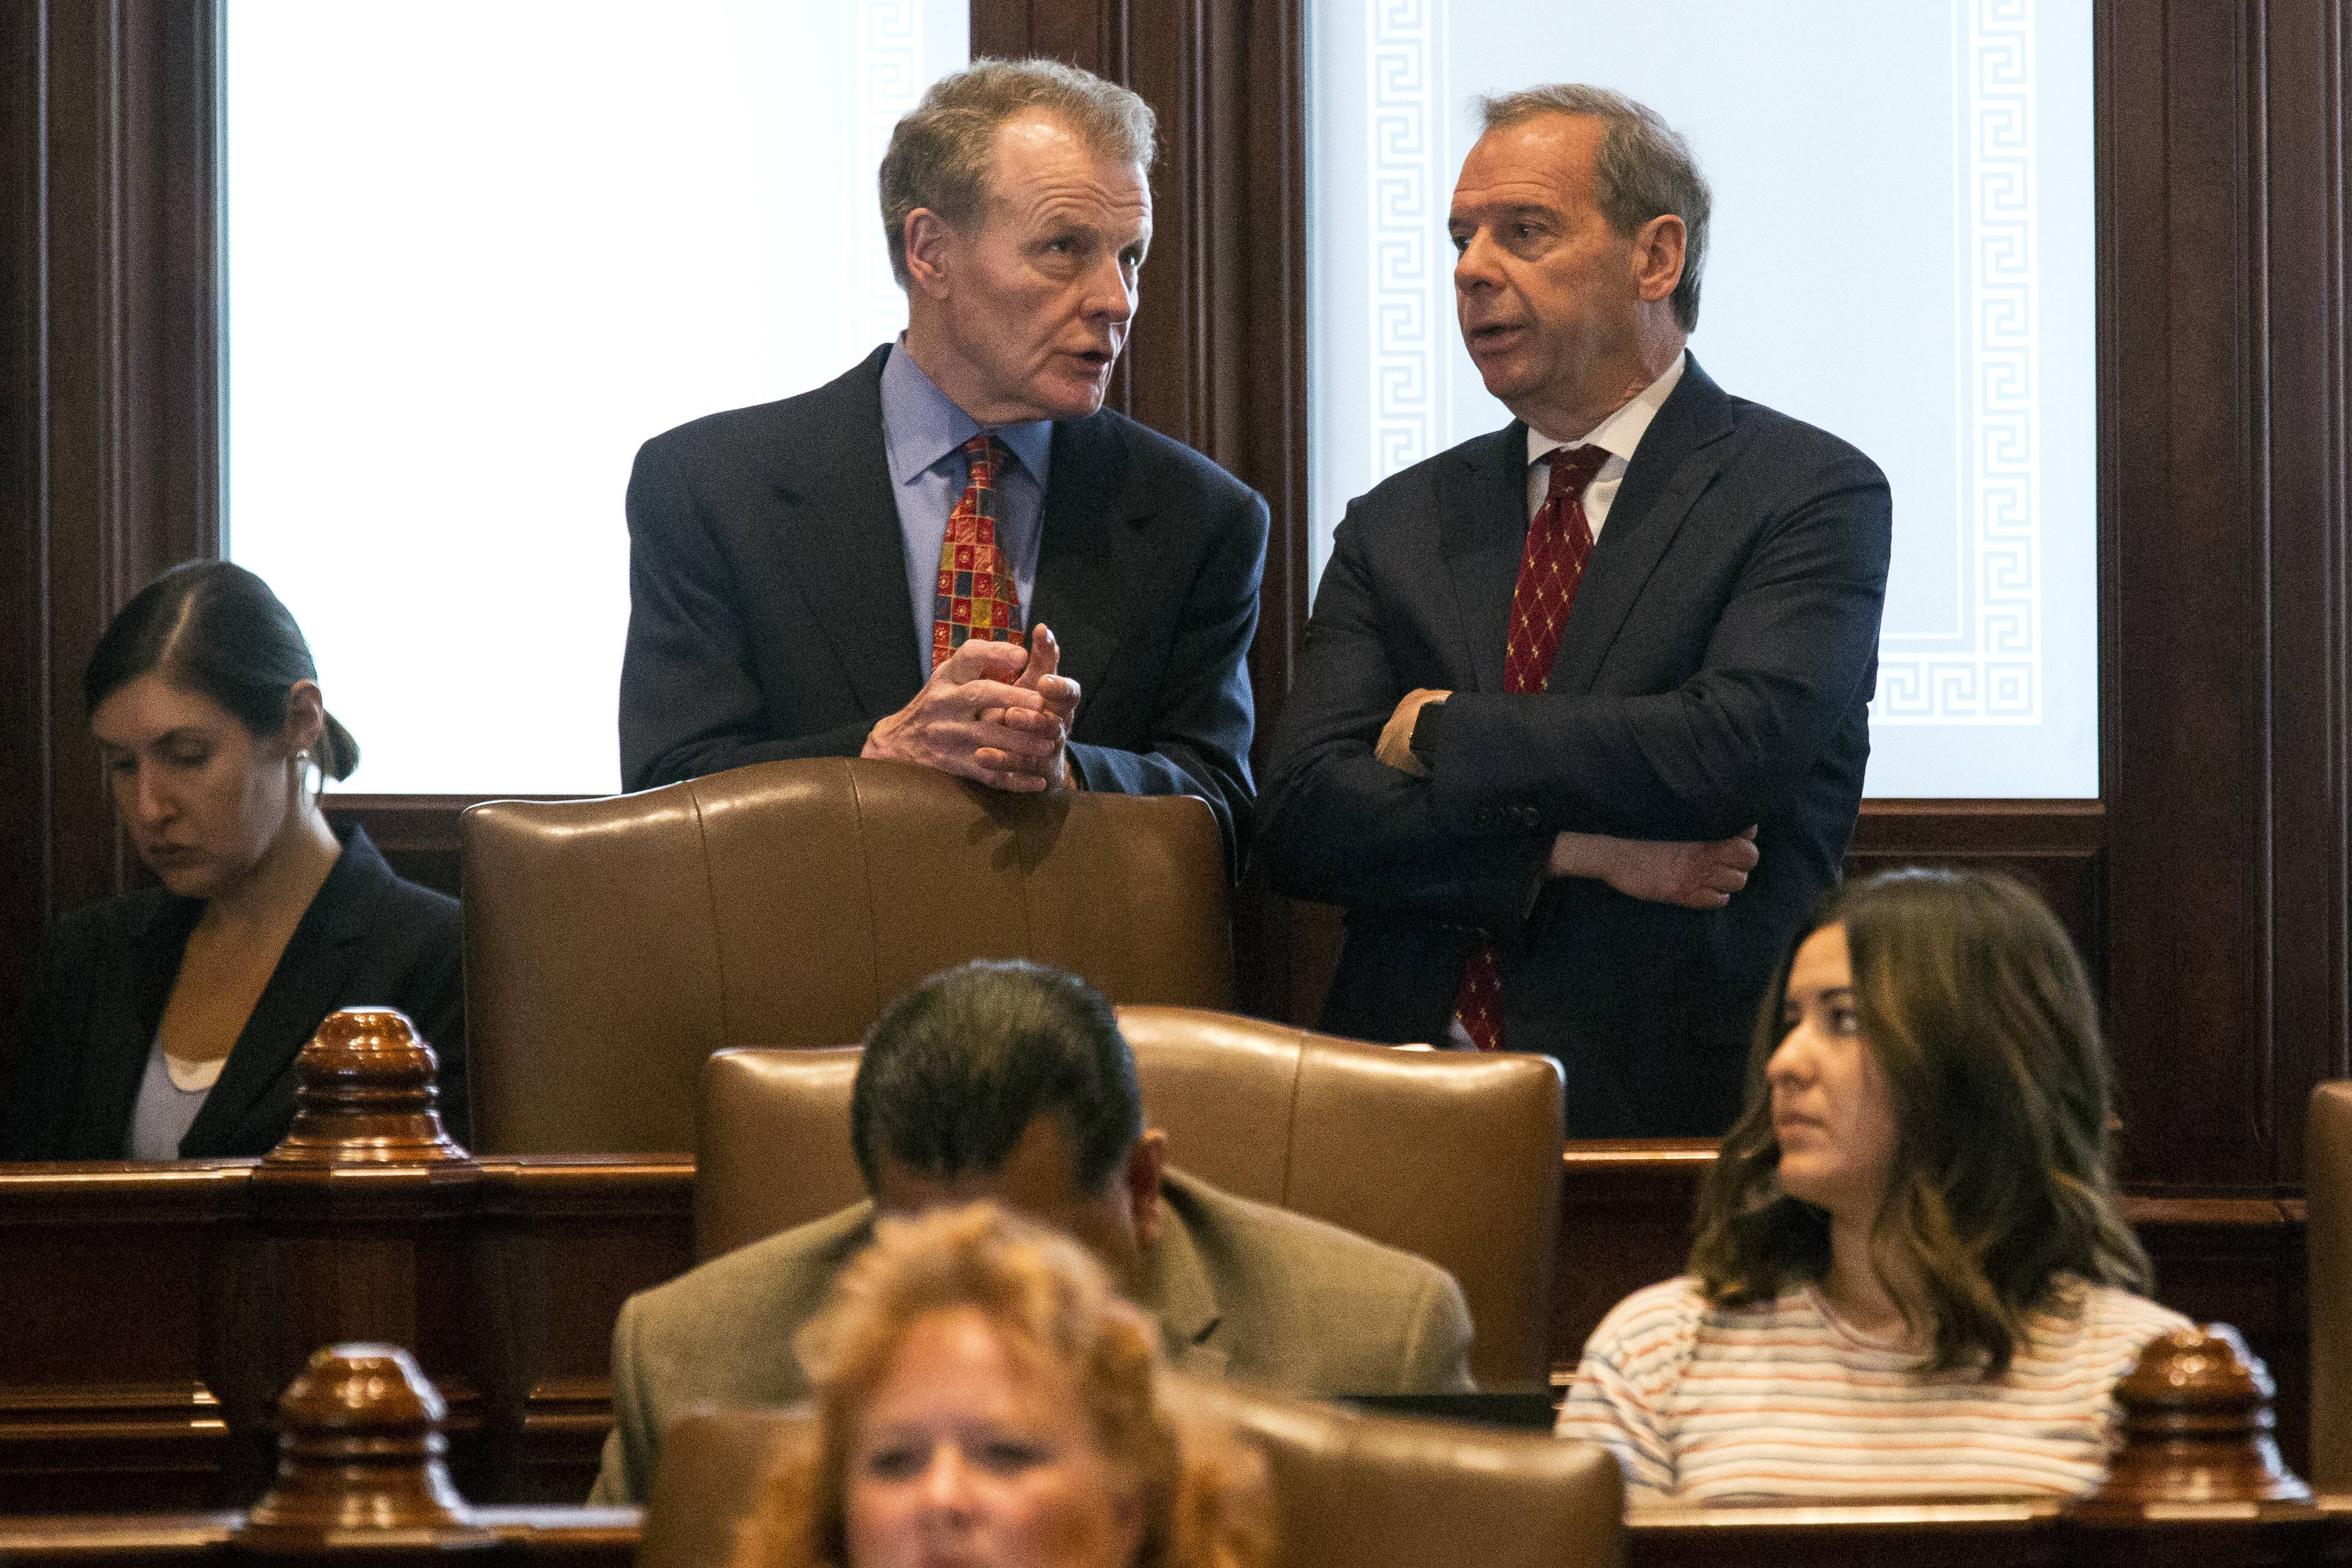 House Speaker Michael Madigan, D-Chicago, left, and Senate President John Cullerton, D-Chicago, talk on the Senate floor July 4 at the Capitol in Springfield.